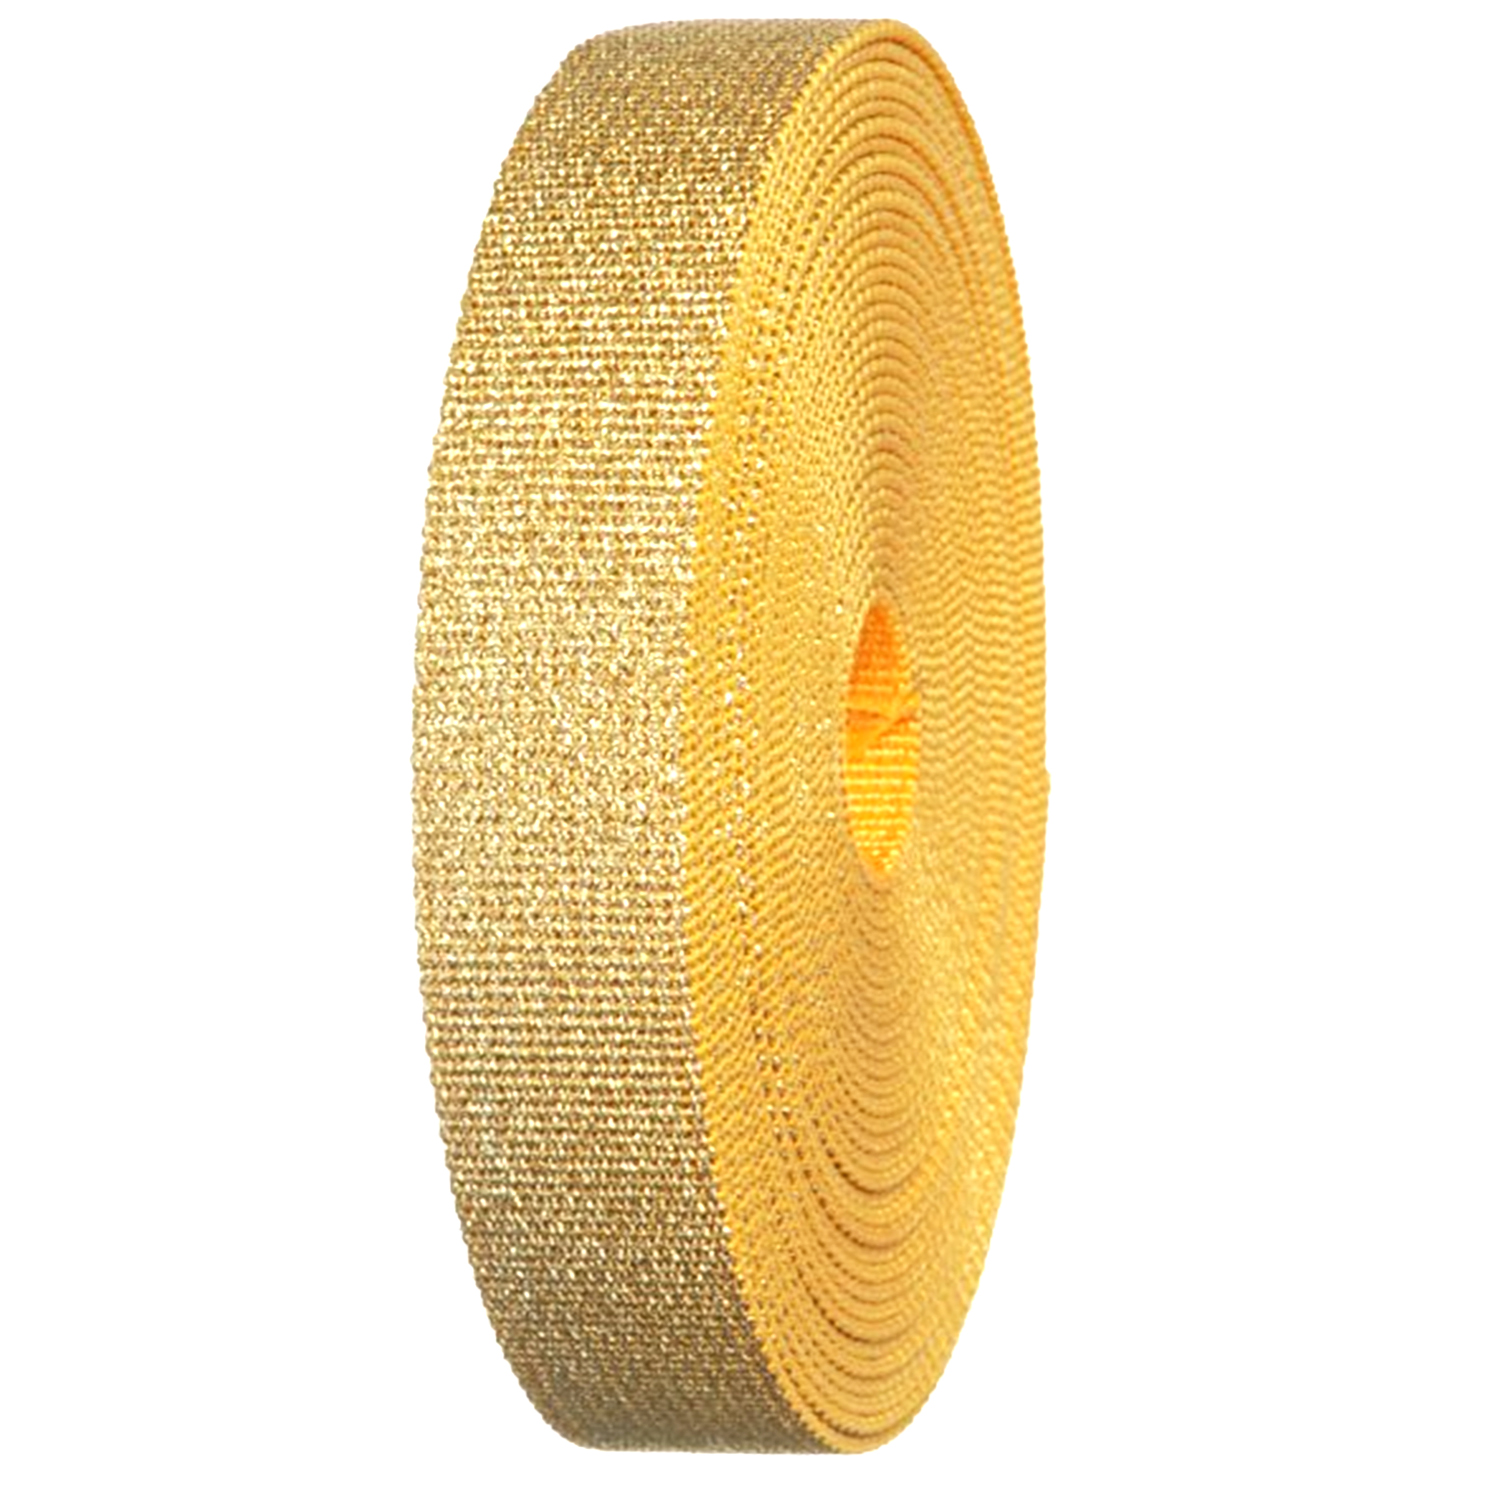 """Gold Glitter Canvas Webbing Roll 1.25"""" Width Durable Strap for Belts, Bags, Crafts"""